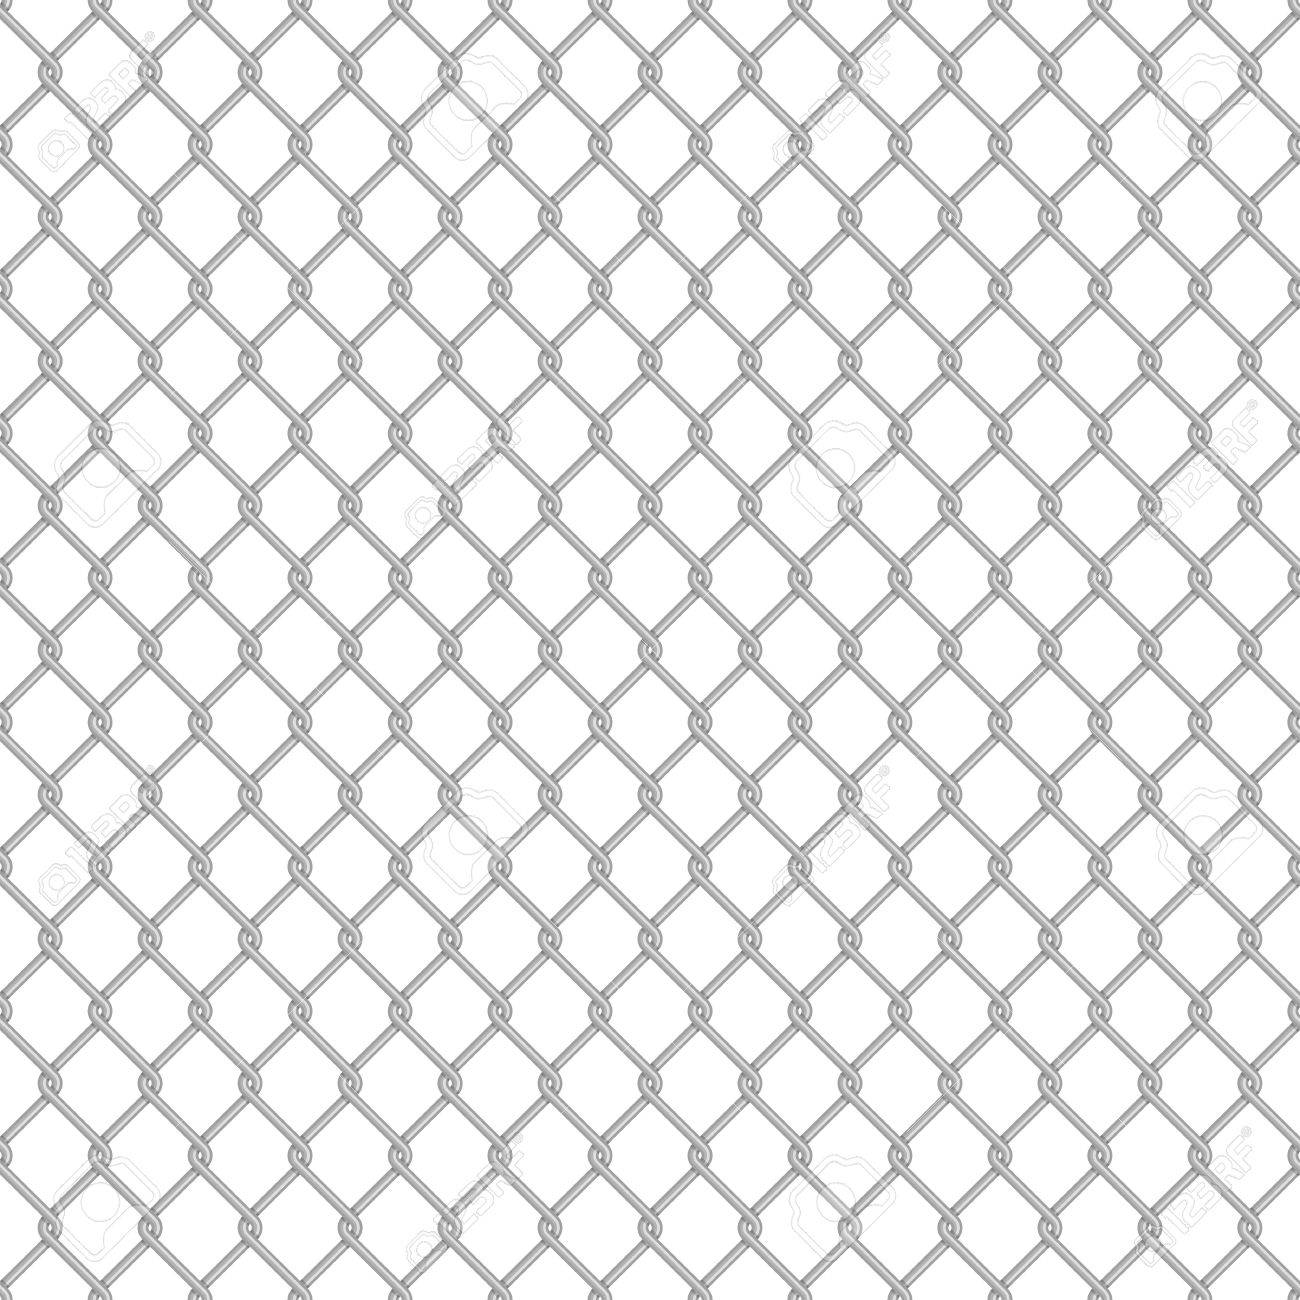 Chain Link Fence Texture Seamless. Chain-link Fence Seamless ...